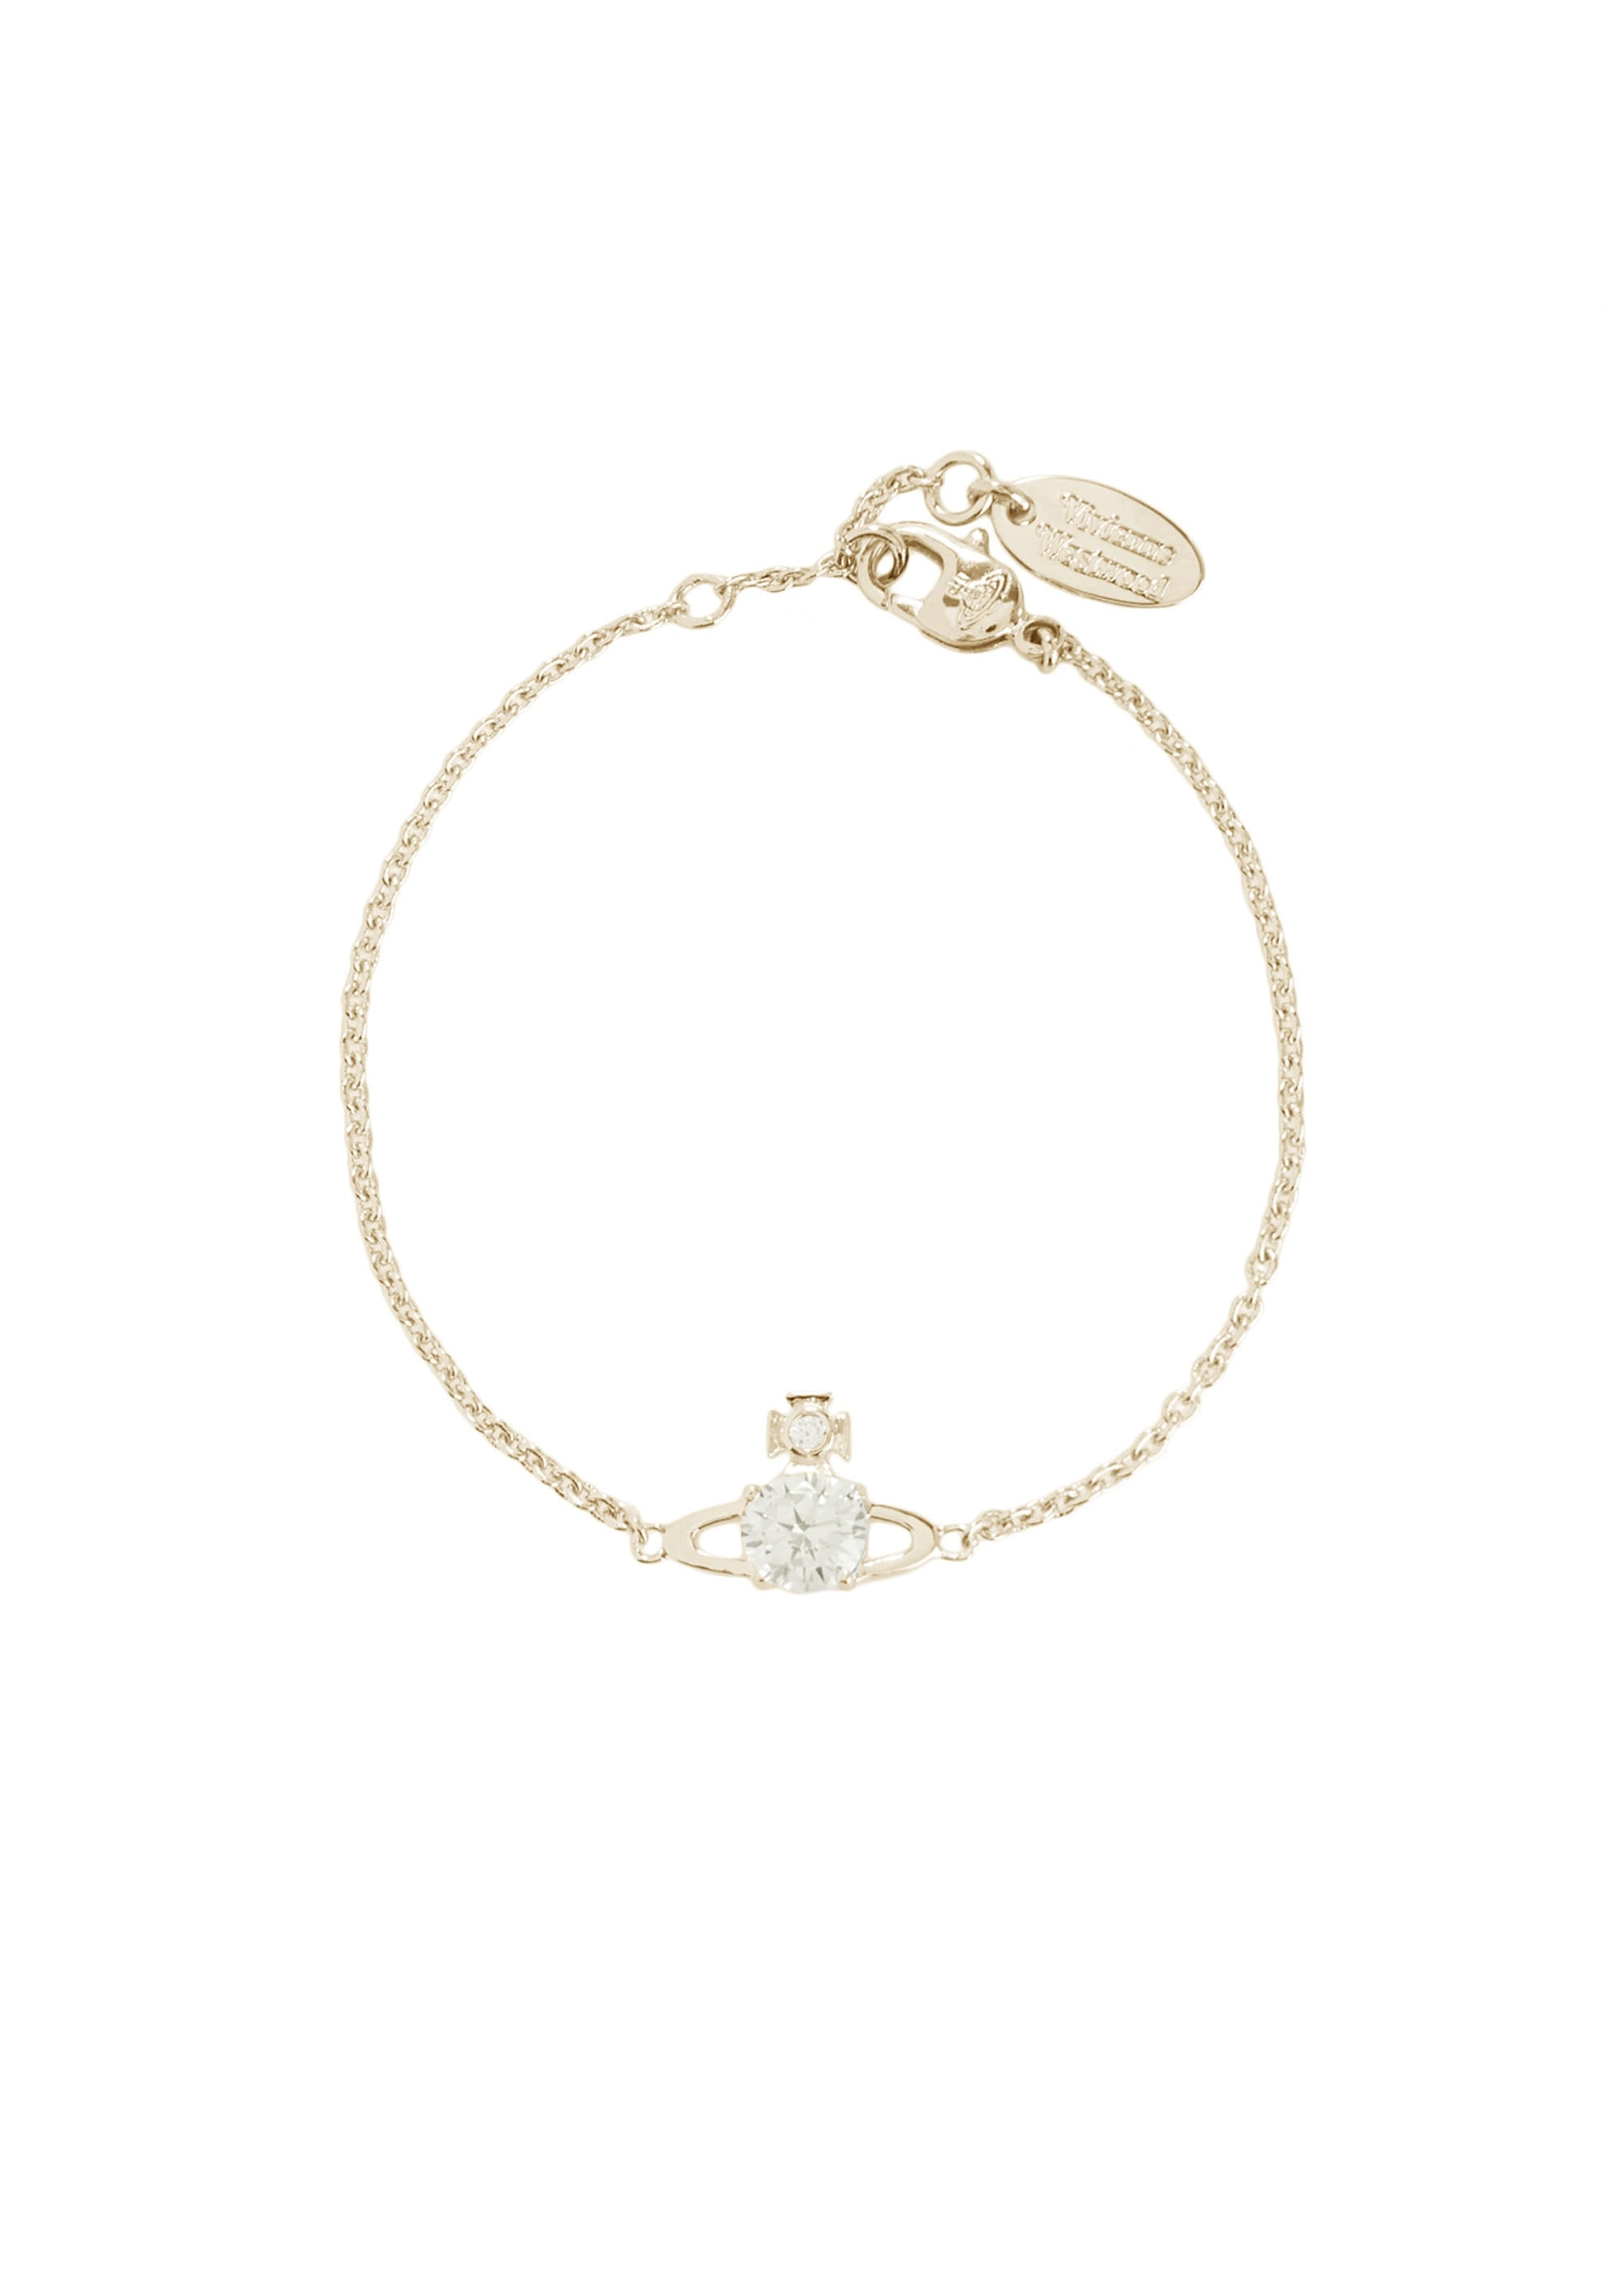 Vivienne Westwood Accessories Reina Small Bracelet Gold